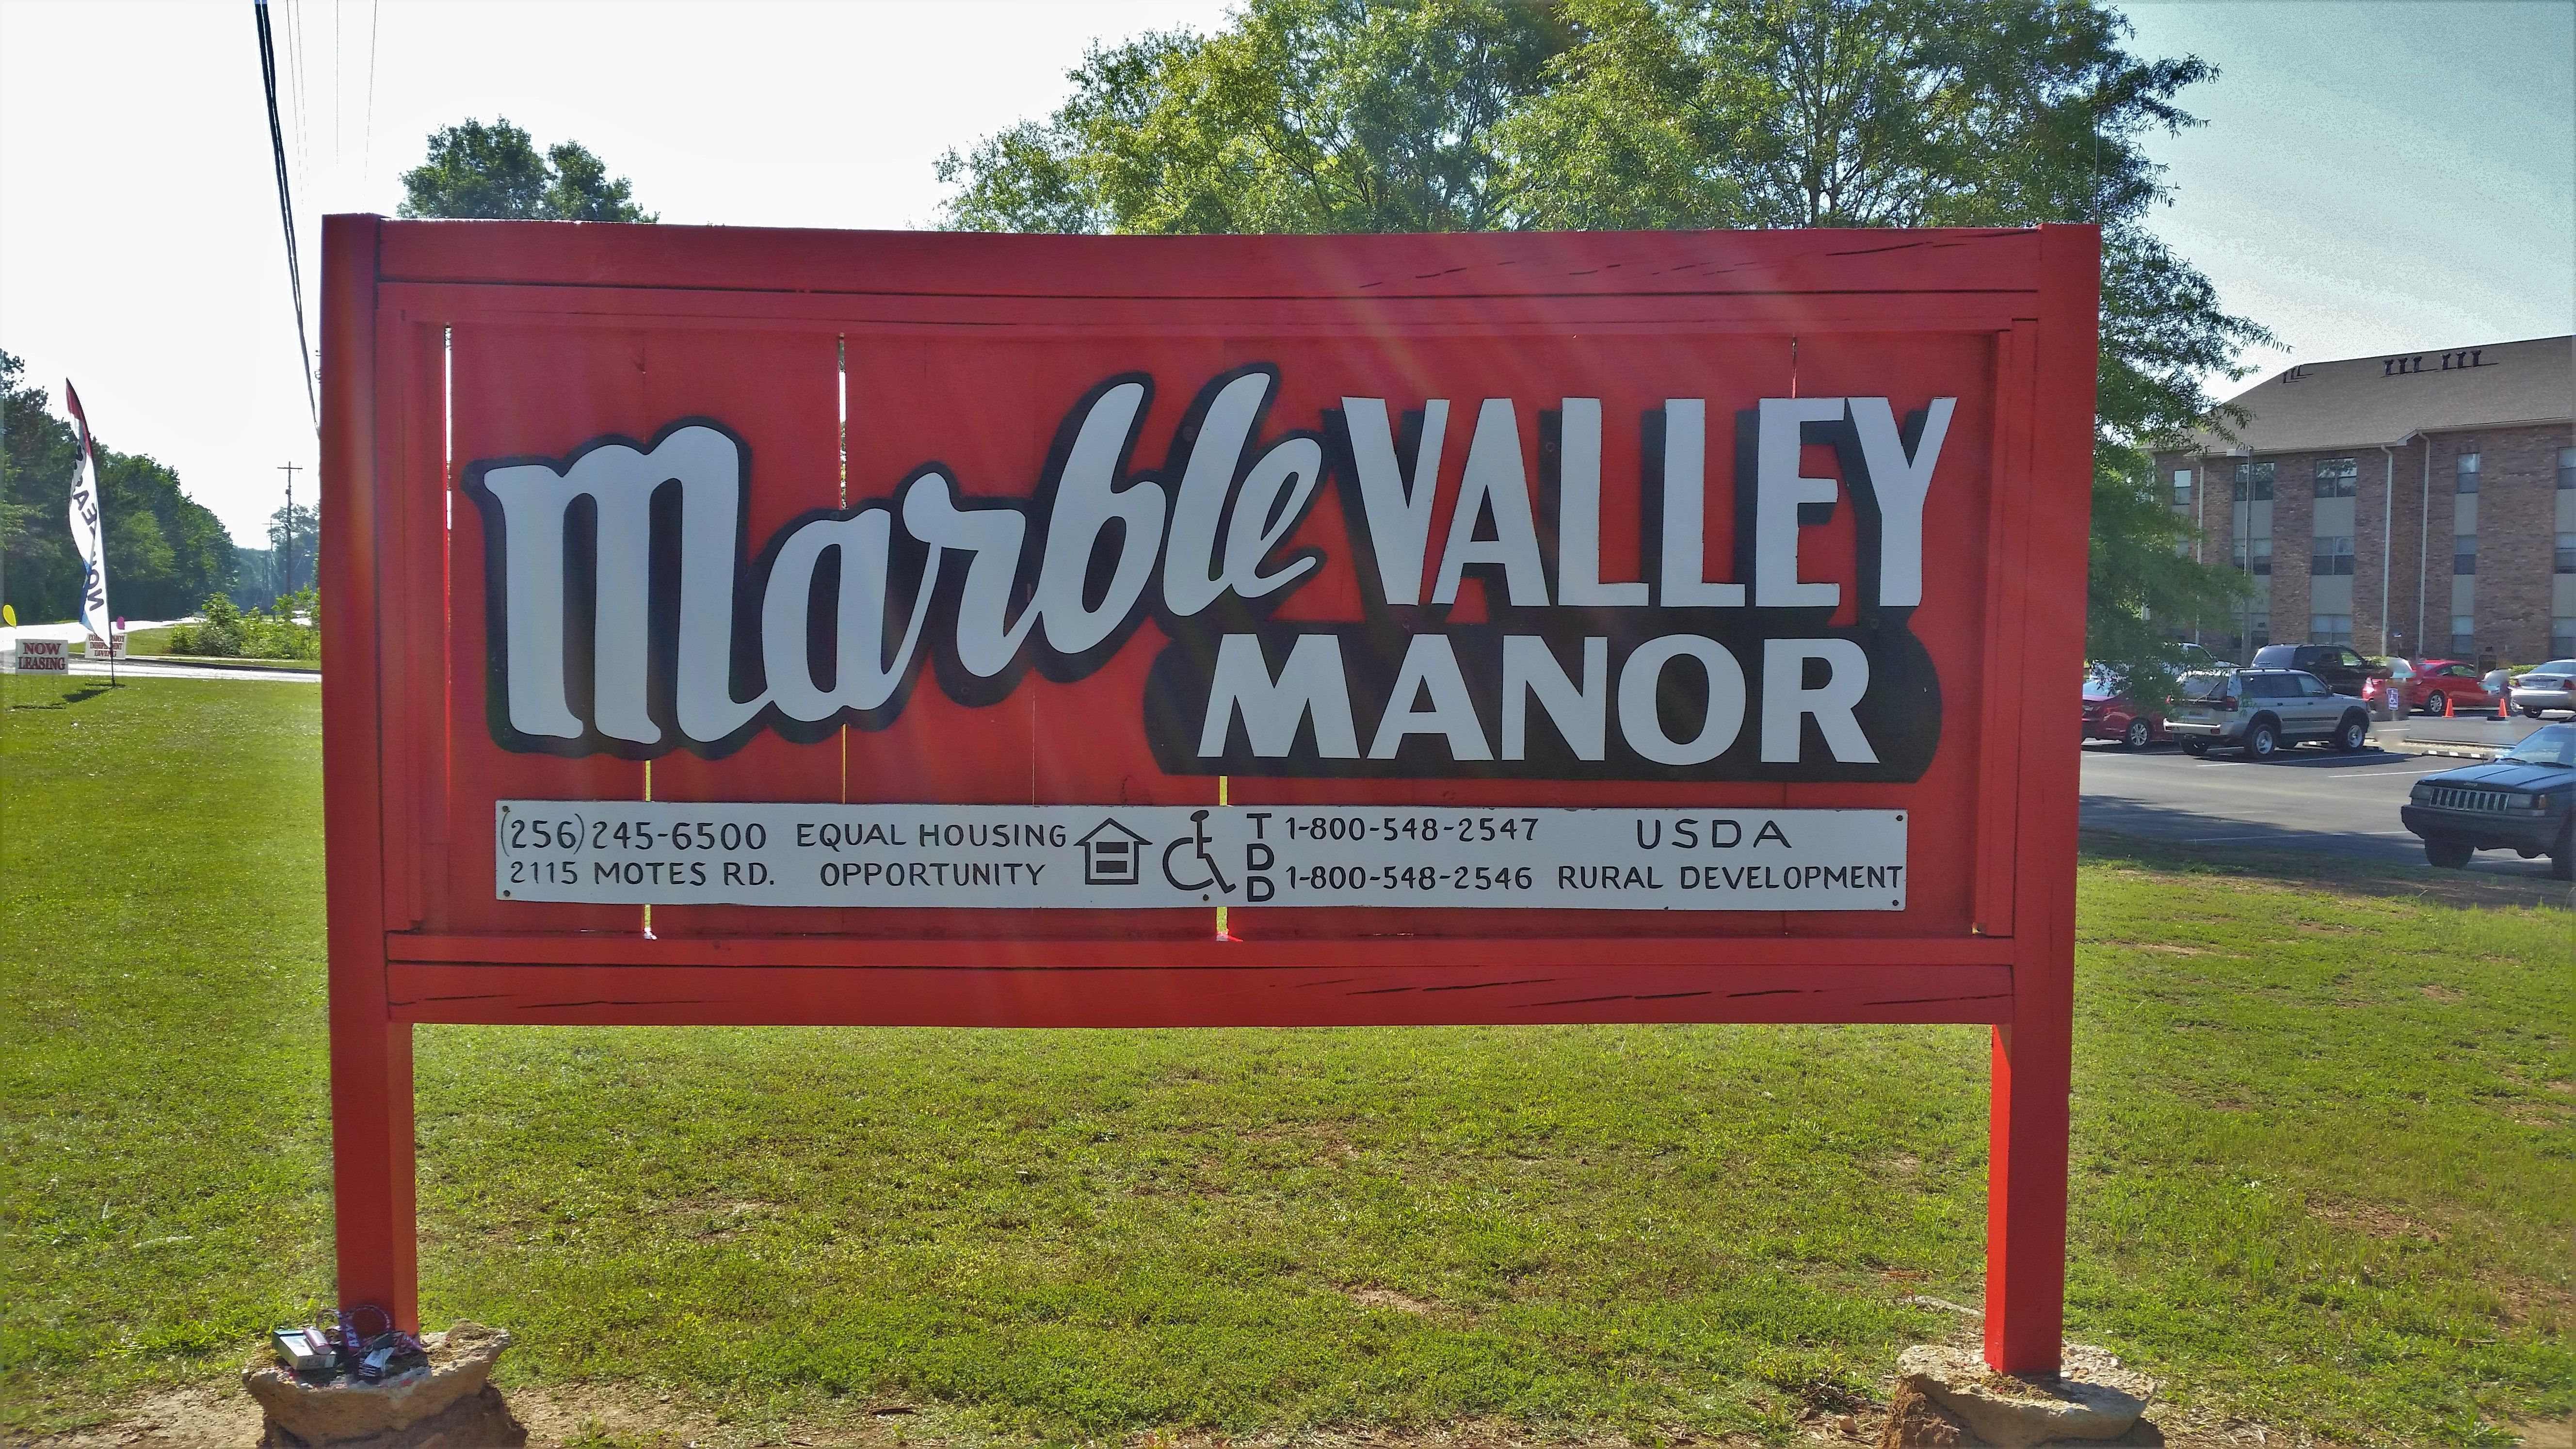 Marble Valley Manor Apartments